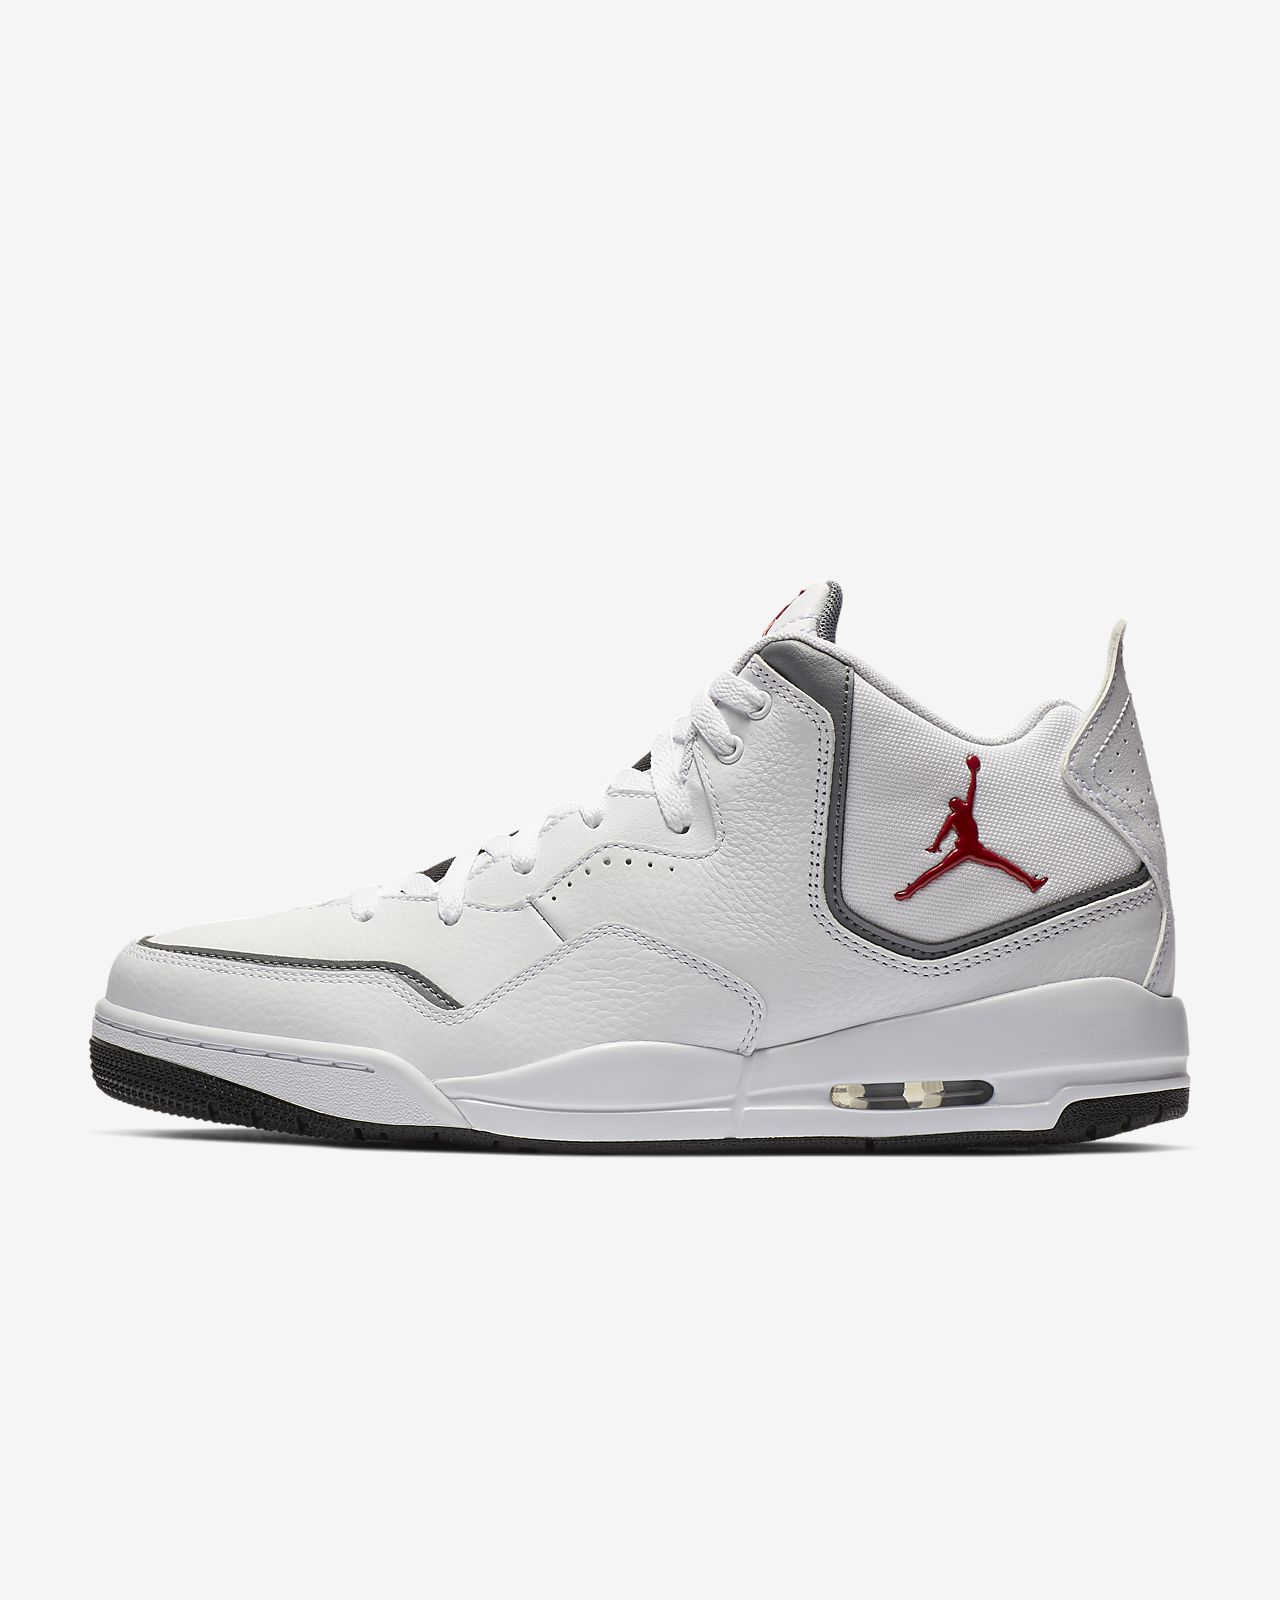 bba3fdbce8915 Chaussure Jordan Courtside 23 pour Homme. Nike.com FR